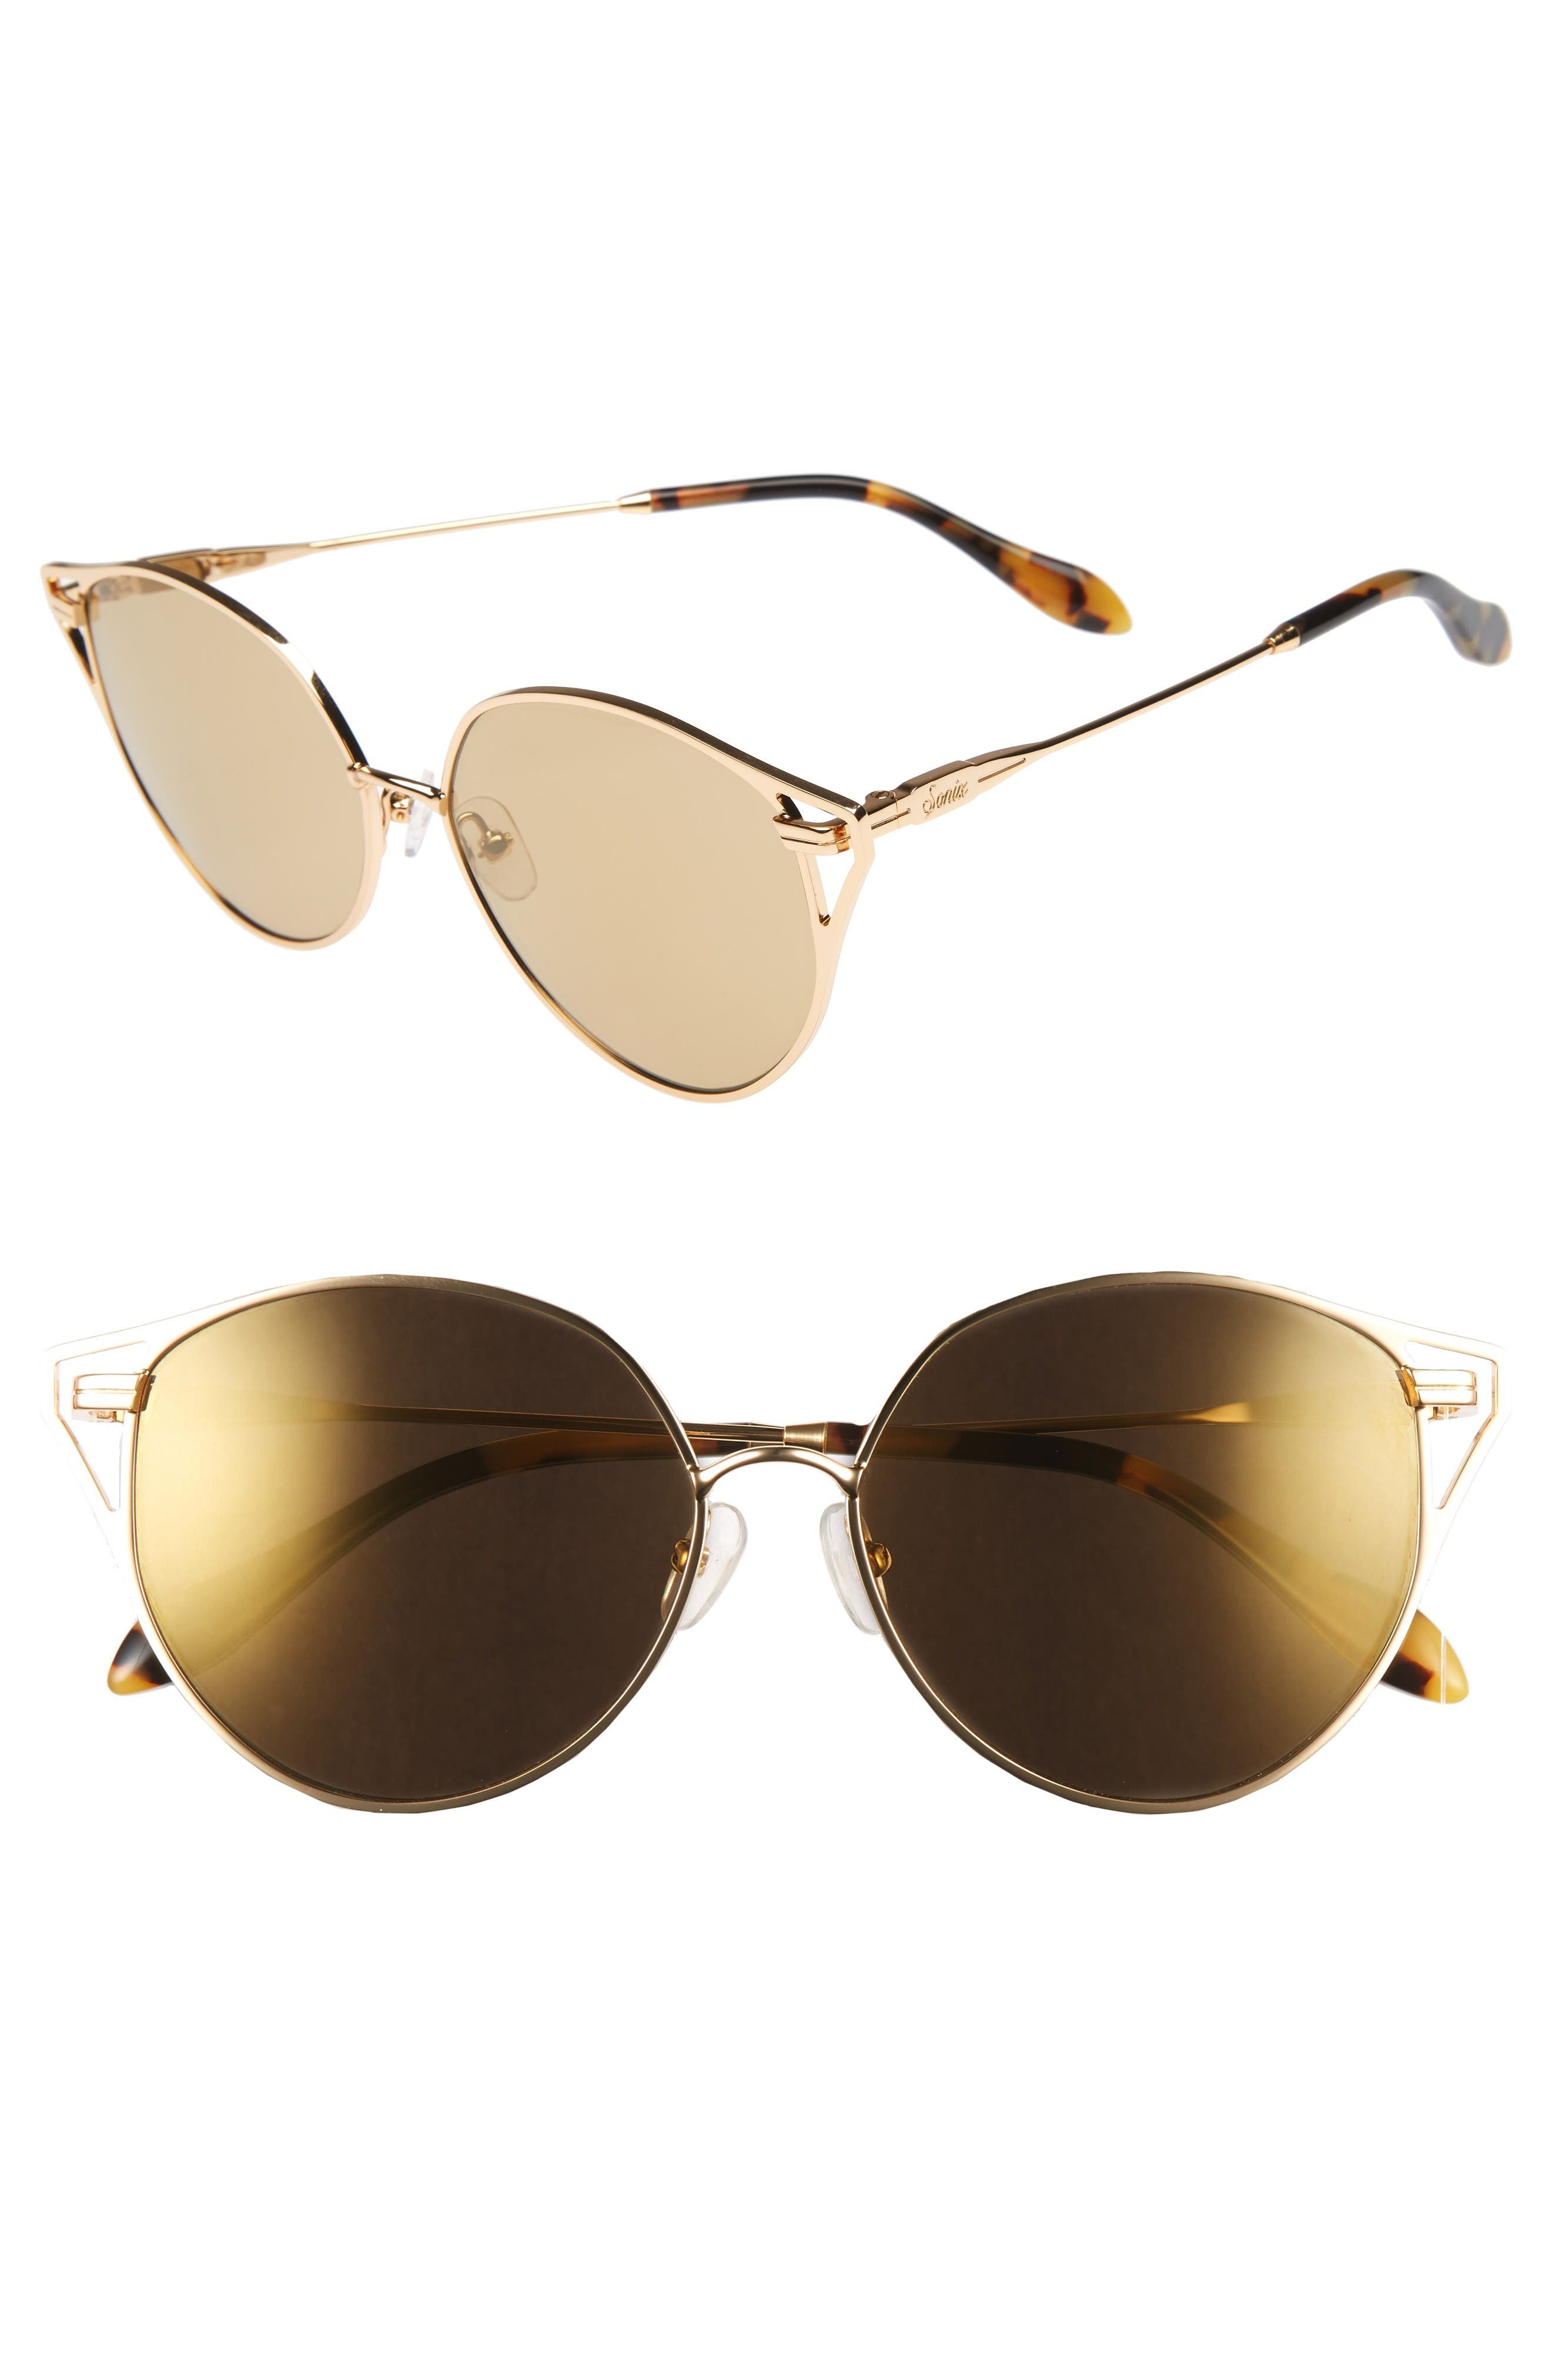 Ibiza 55mm Cat Eye Sunglasses,                         Main,                         color, Gold Wire/ Amber Mirror